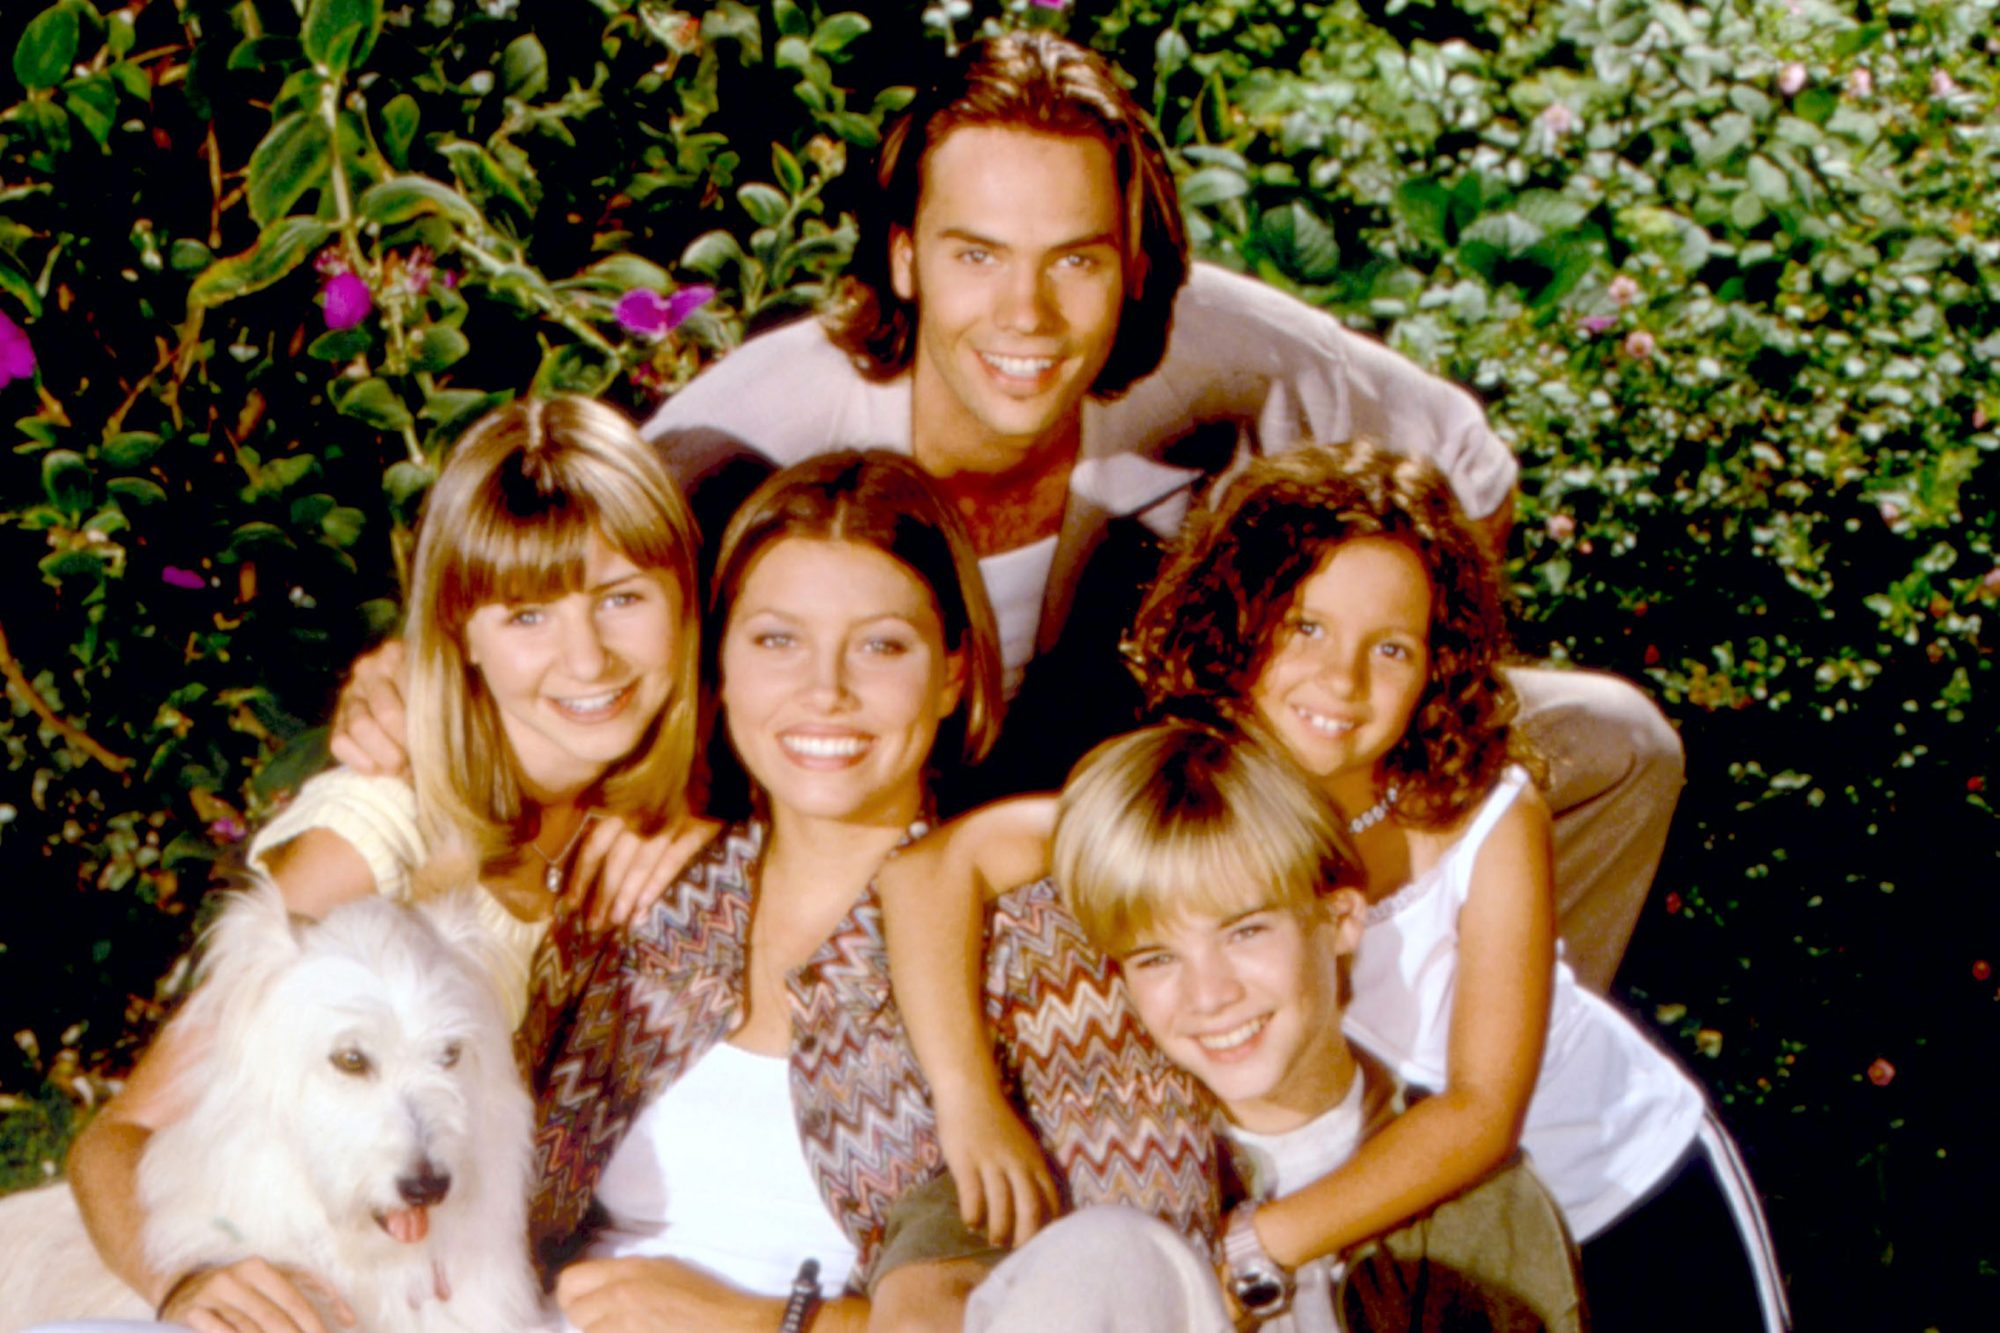 7TH HEAVEN, Barry Watson (top), middle row: Beverly Mitchell, Jessica Biel, Mackenzie Rosman, bottom